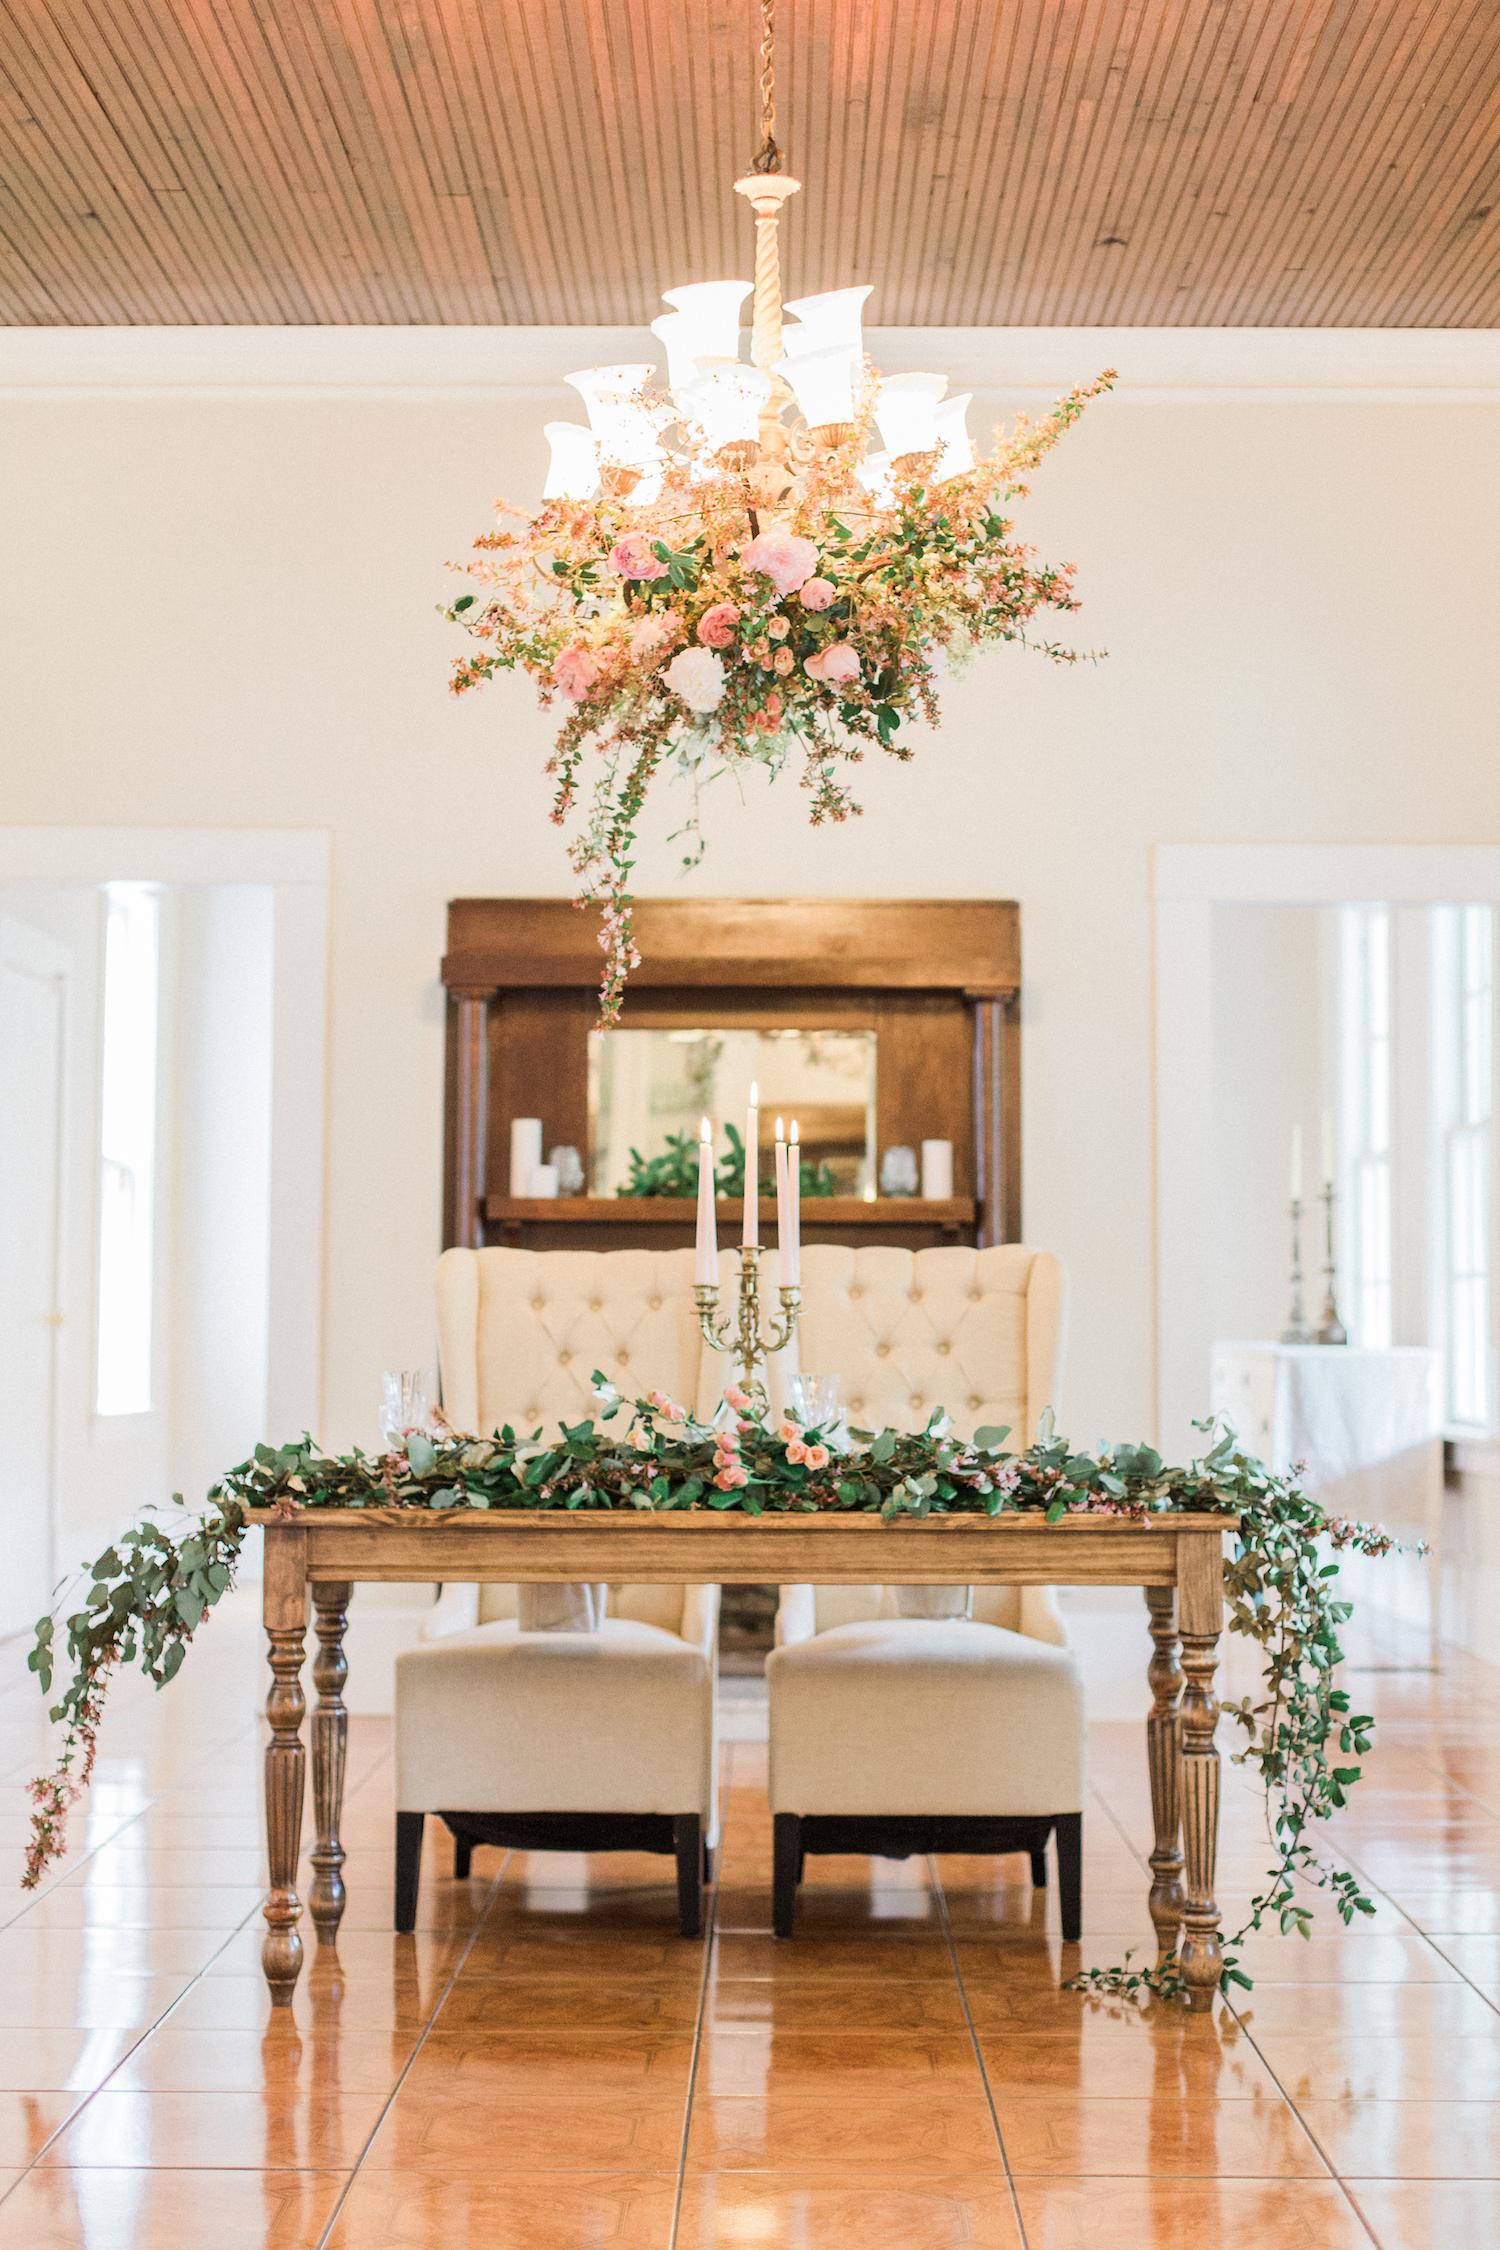 Floral styling on a chandelier for sweetheart table at The McGarity House in Temple, Georgia.